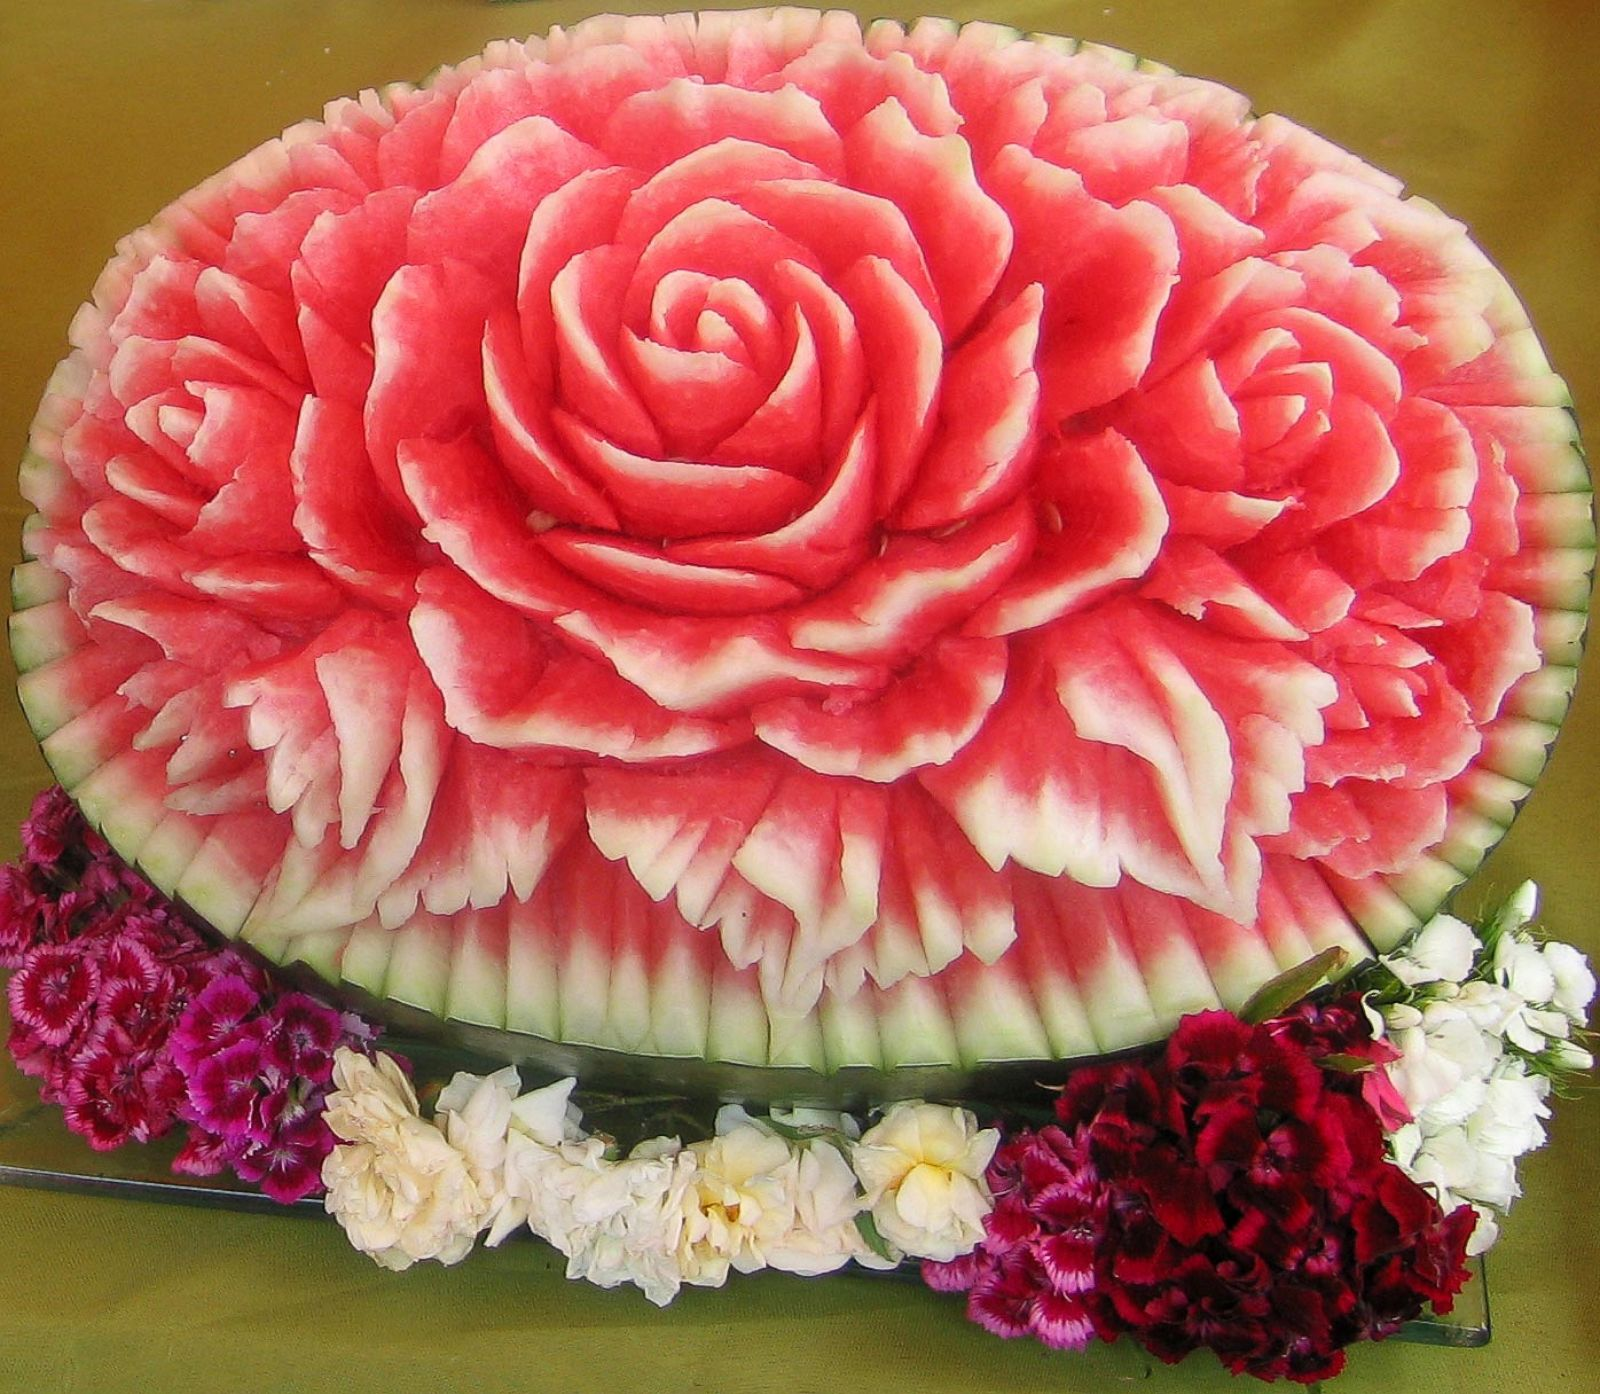 Deliciously sweet watermelon carvings photos abc news